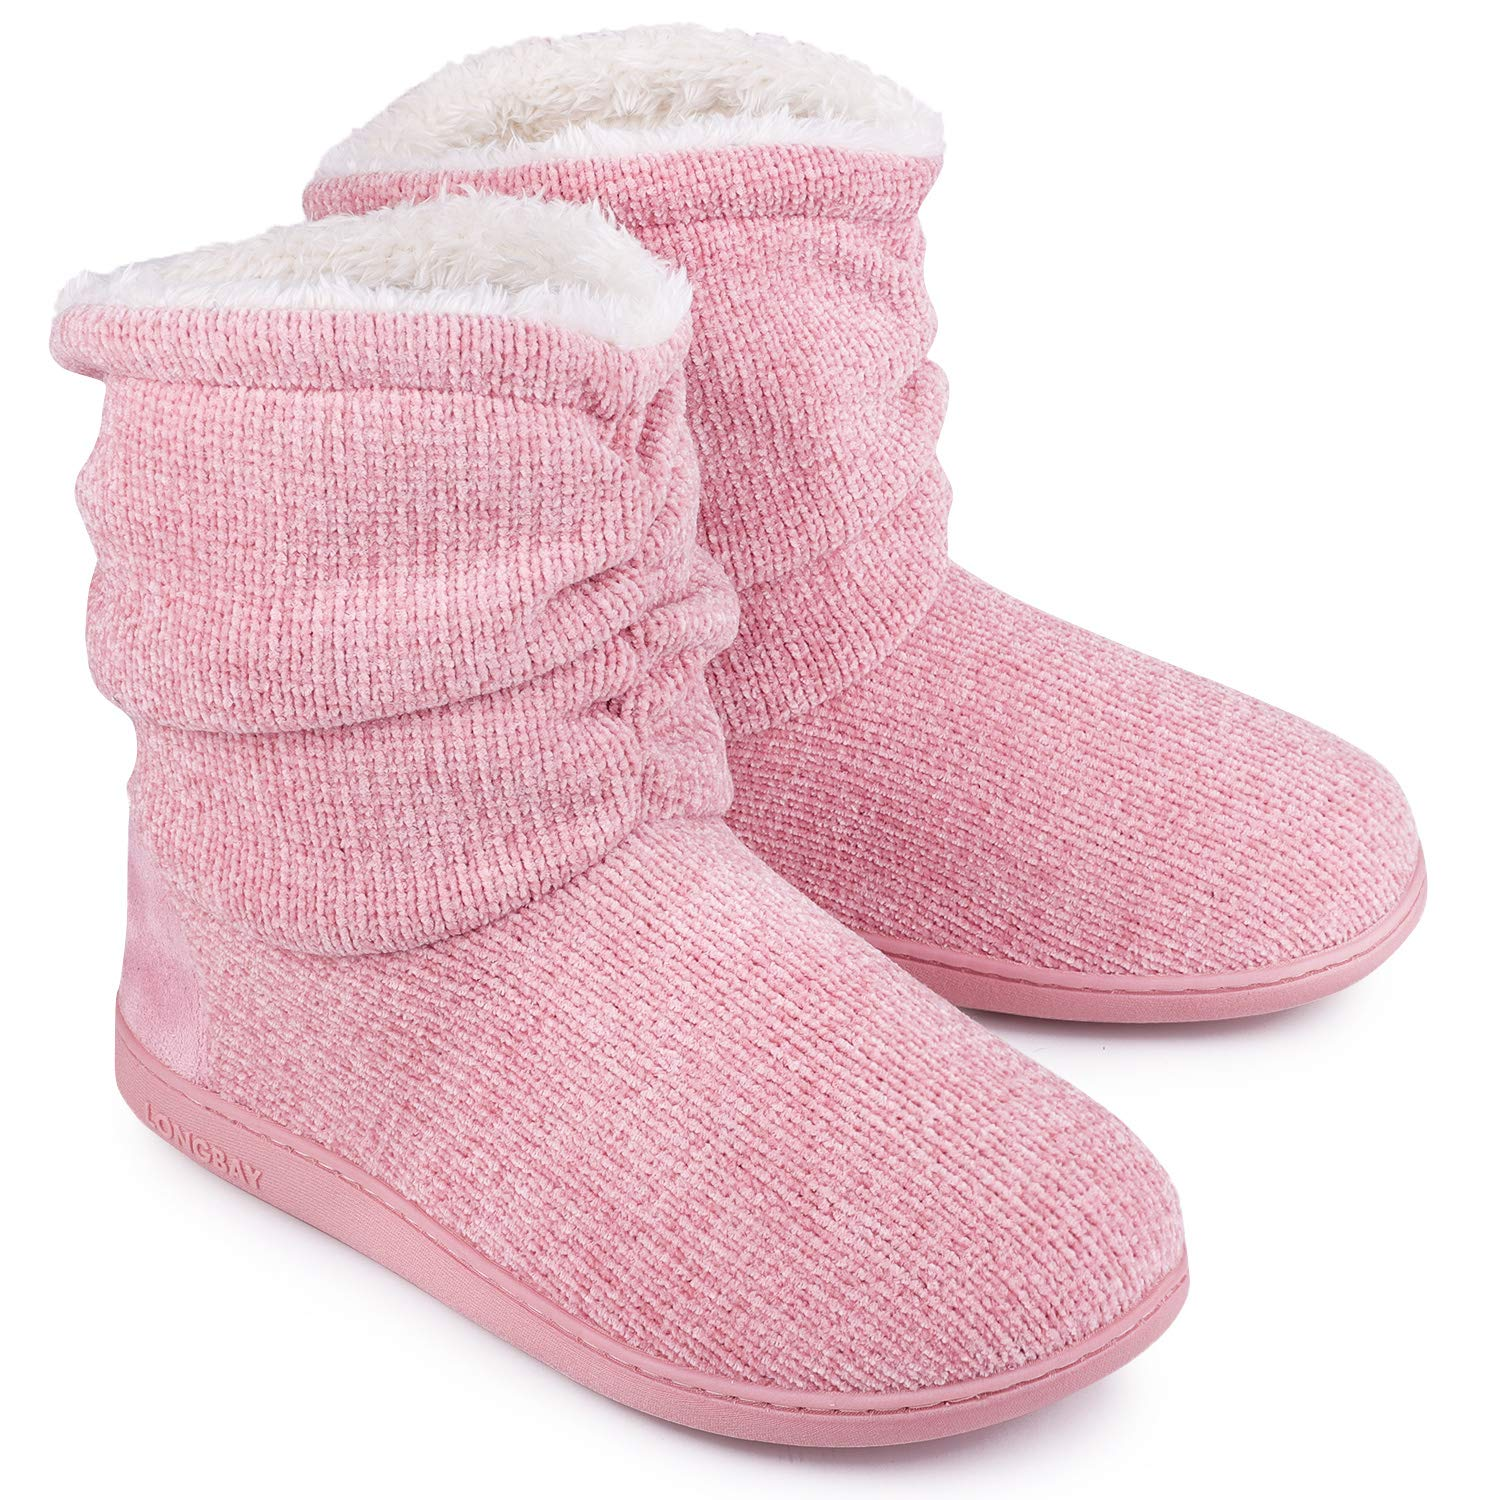 Image of Chenille Knit Pink Boot Slippers for Women - See More Colors